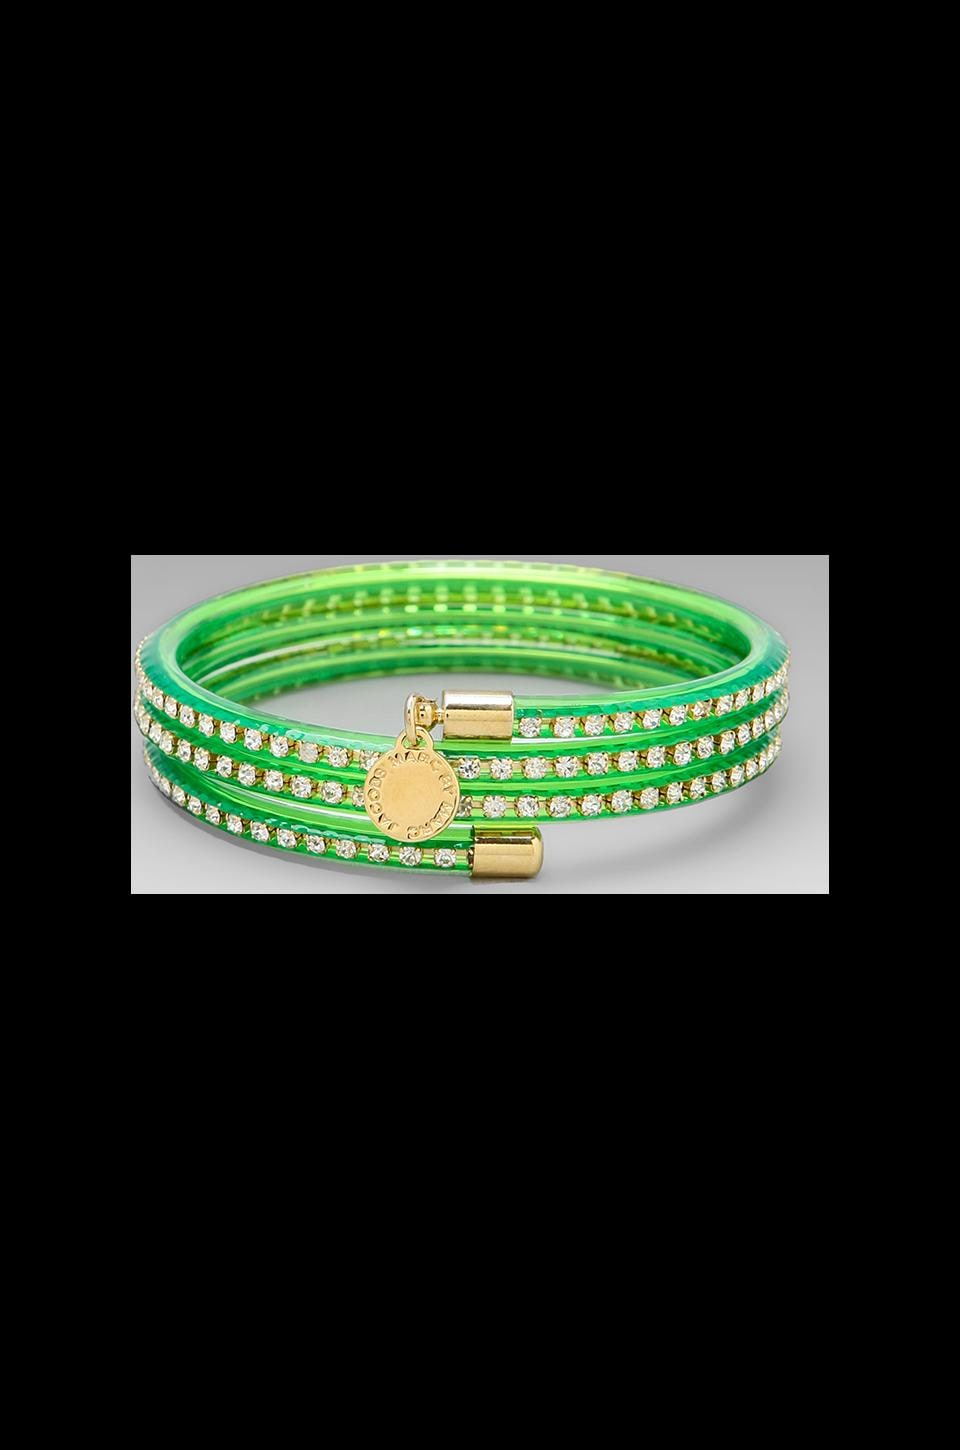 Marc by Marc Jacobs Slinky Bangle in Toucan Green